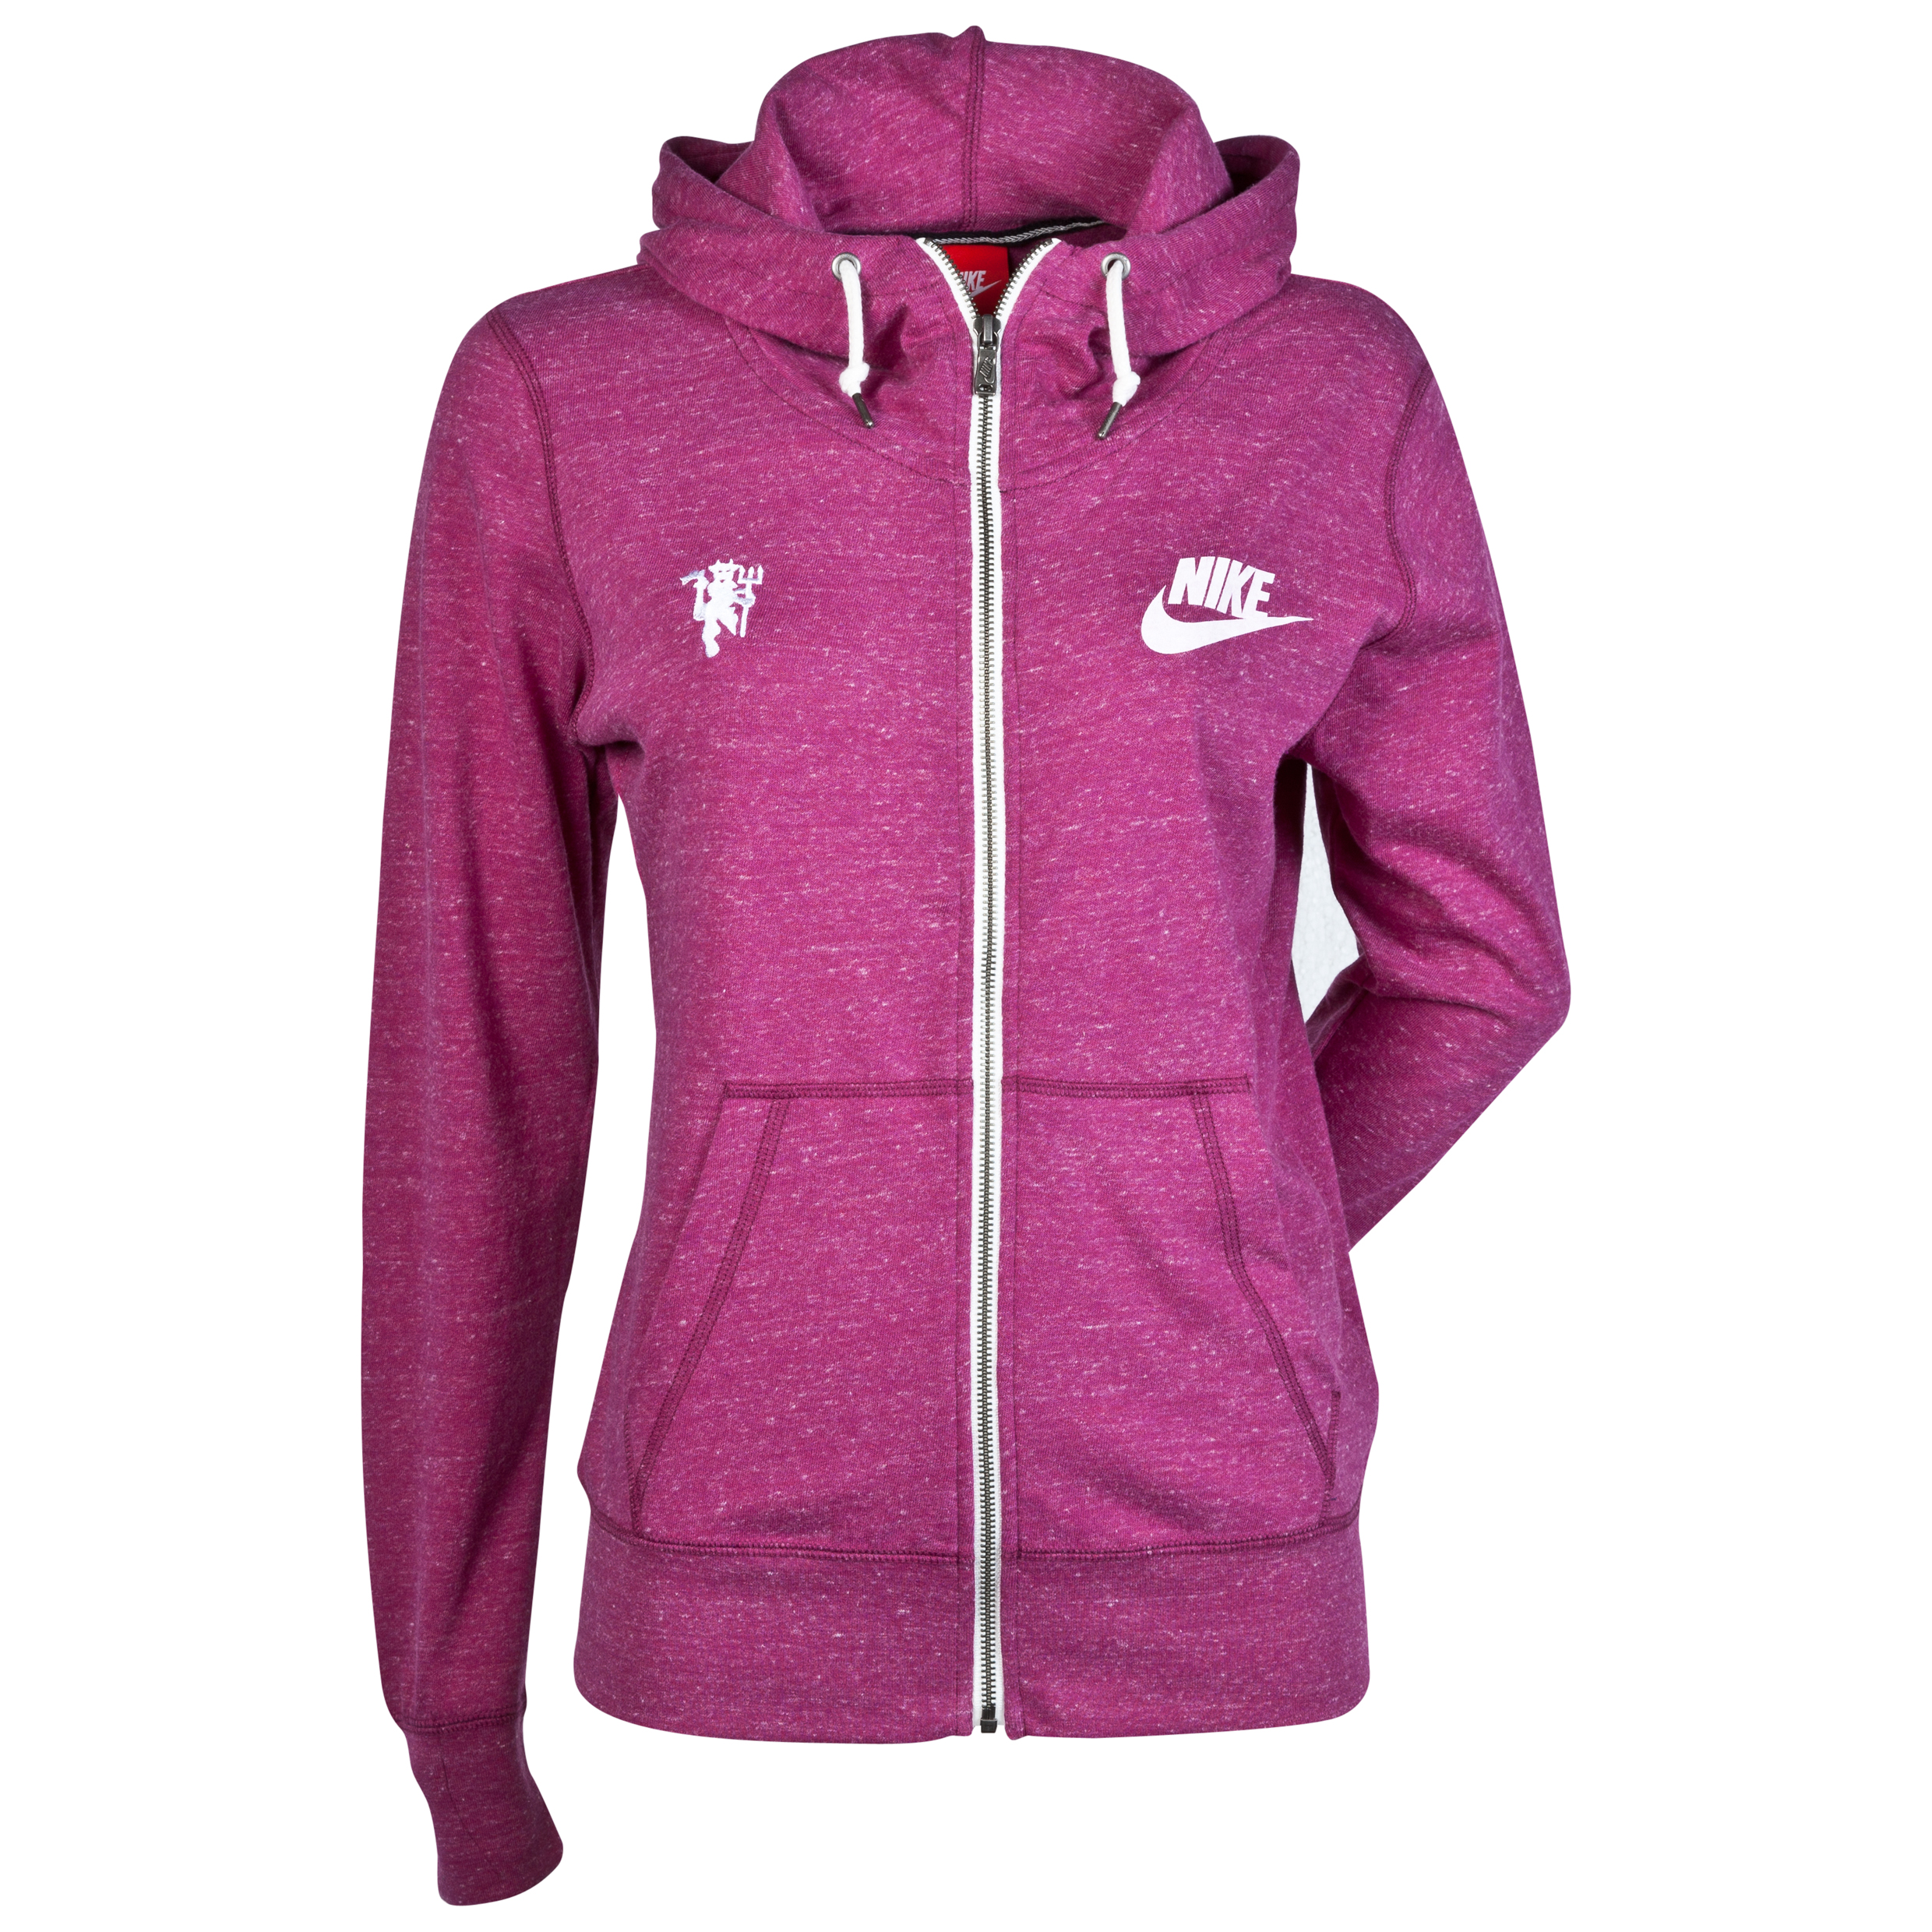 Manchester United Gym Vintage Full Zip Hoody - Raspberry Red/Sail - Womens Red